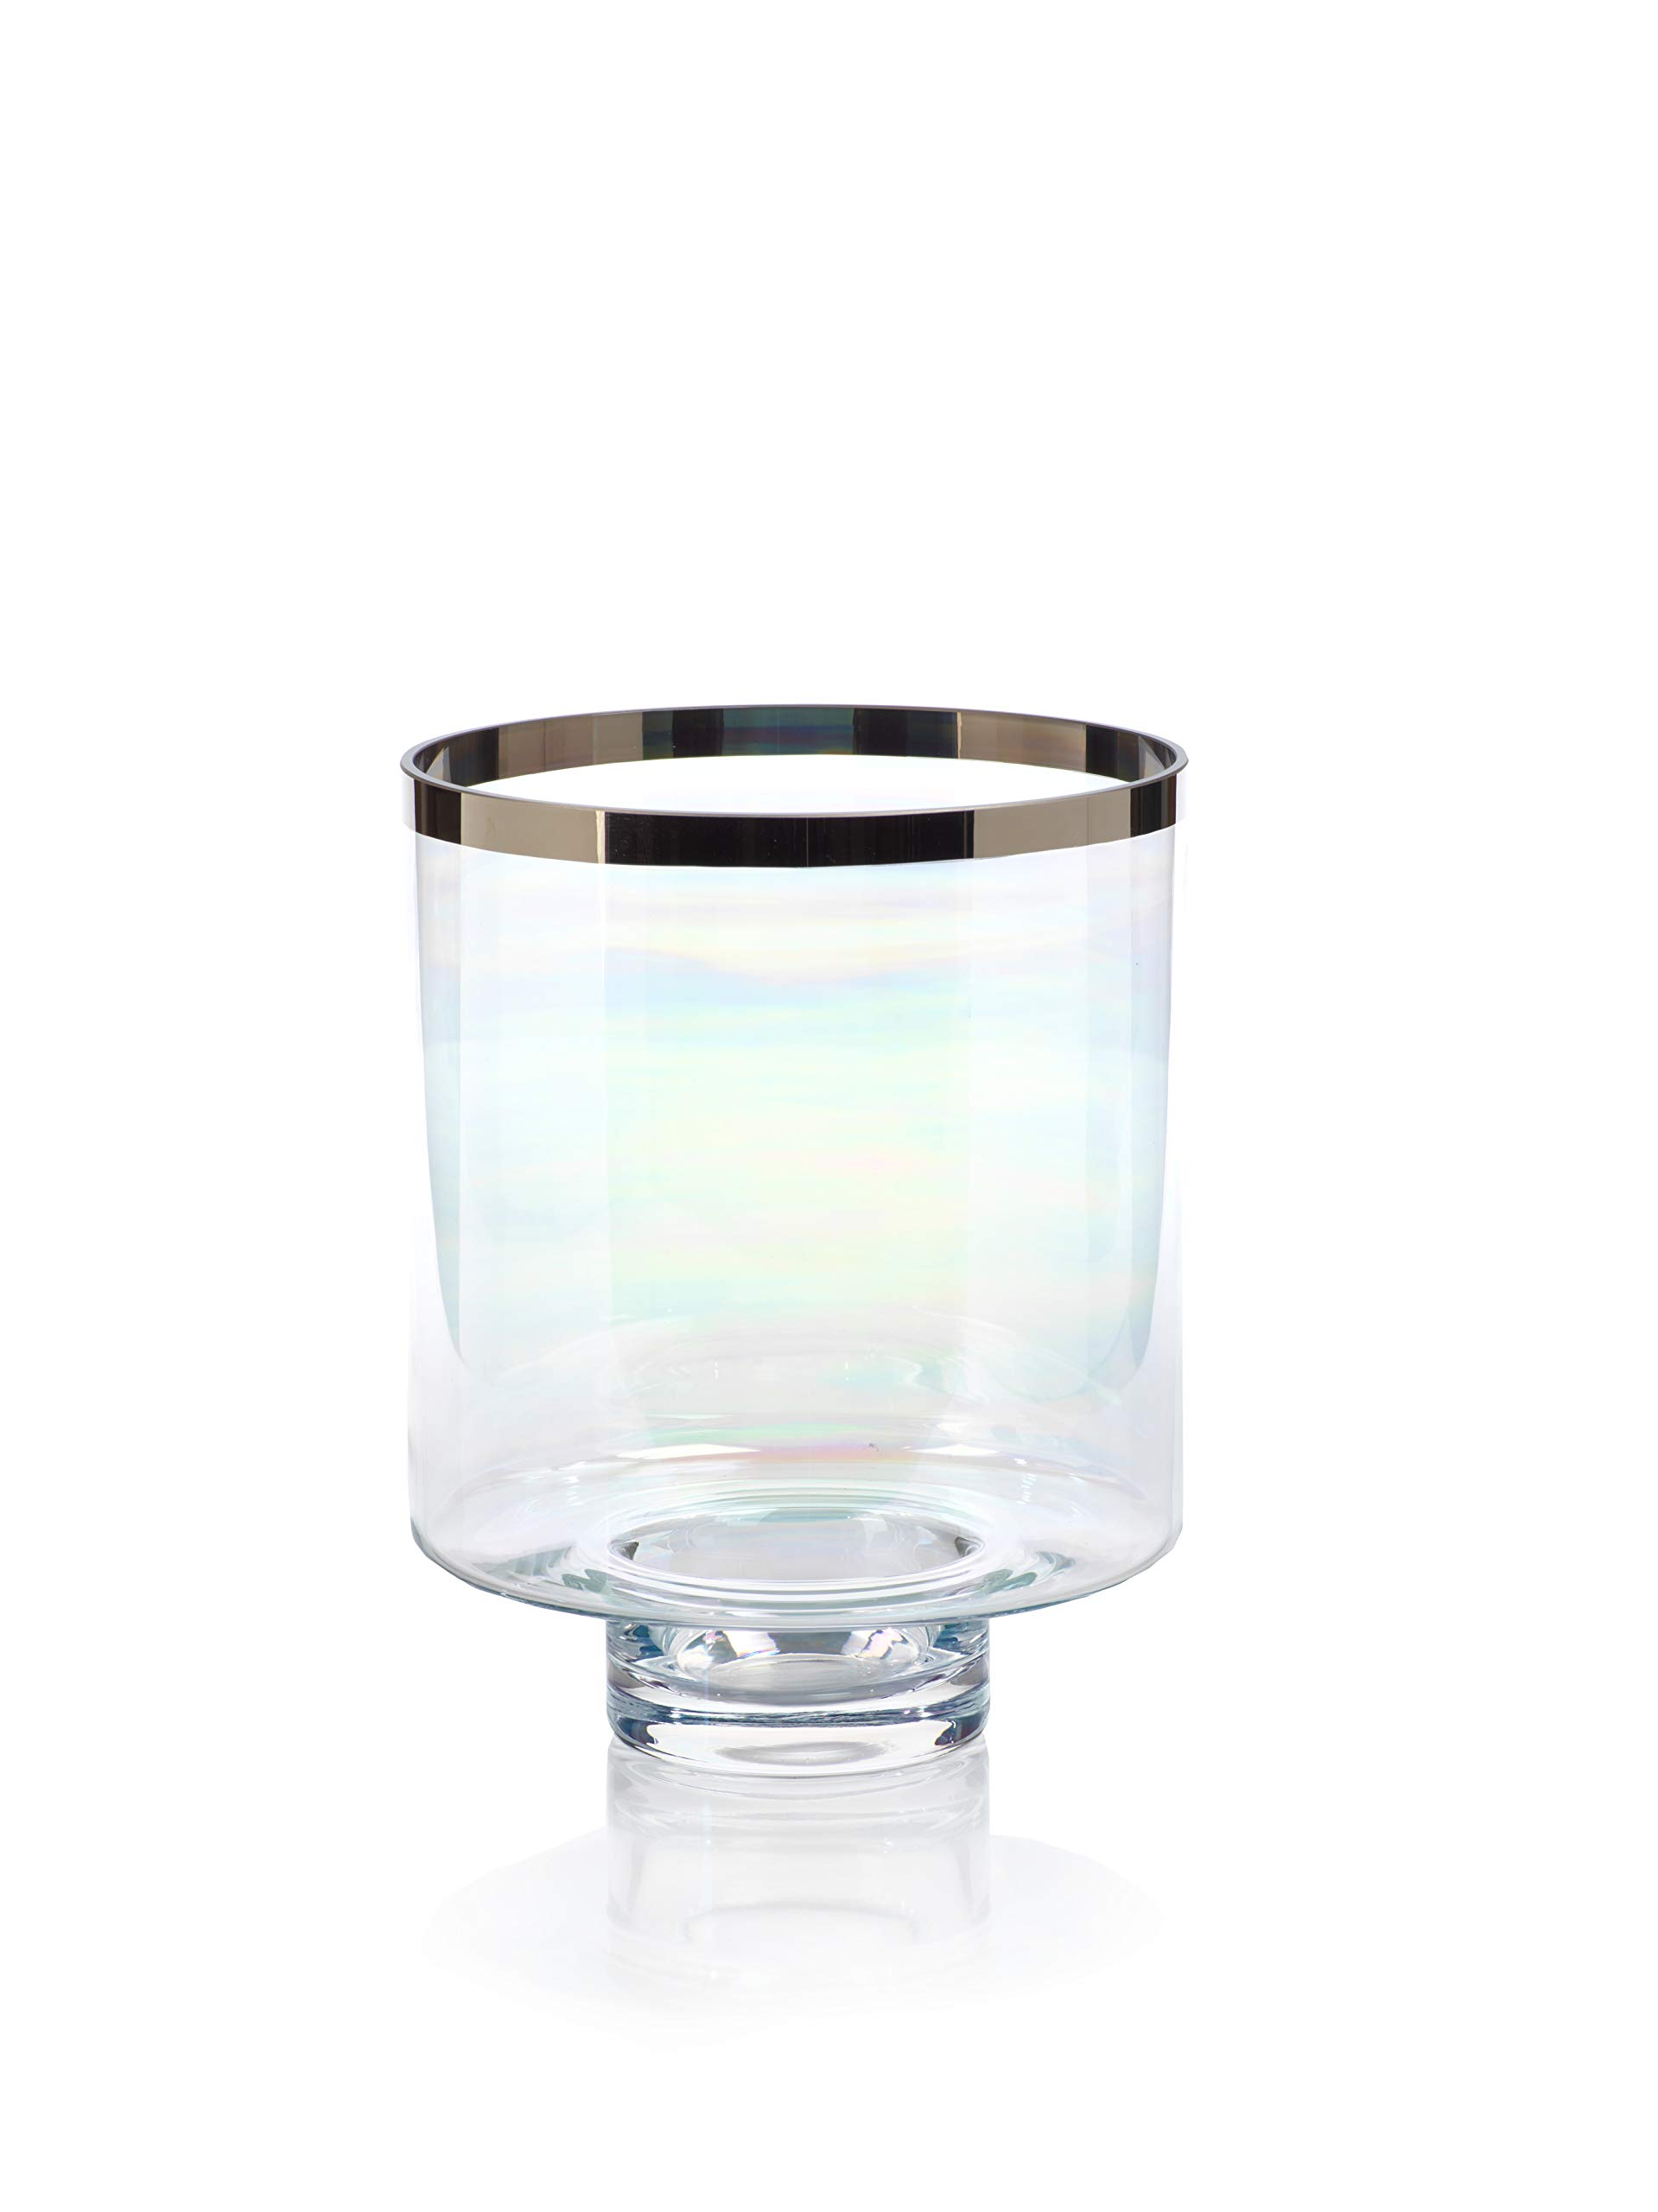 Zodax Pearl Luster Glass Platinum Rim, Large Hurricane, Clear